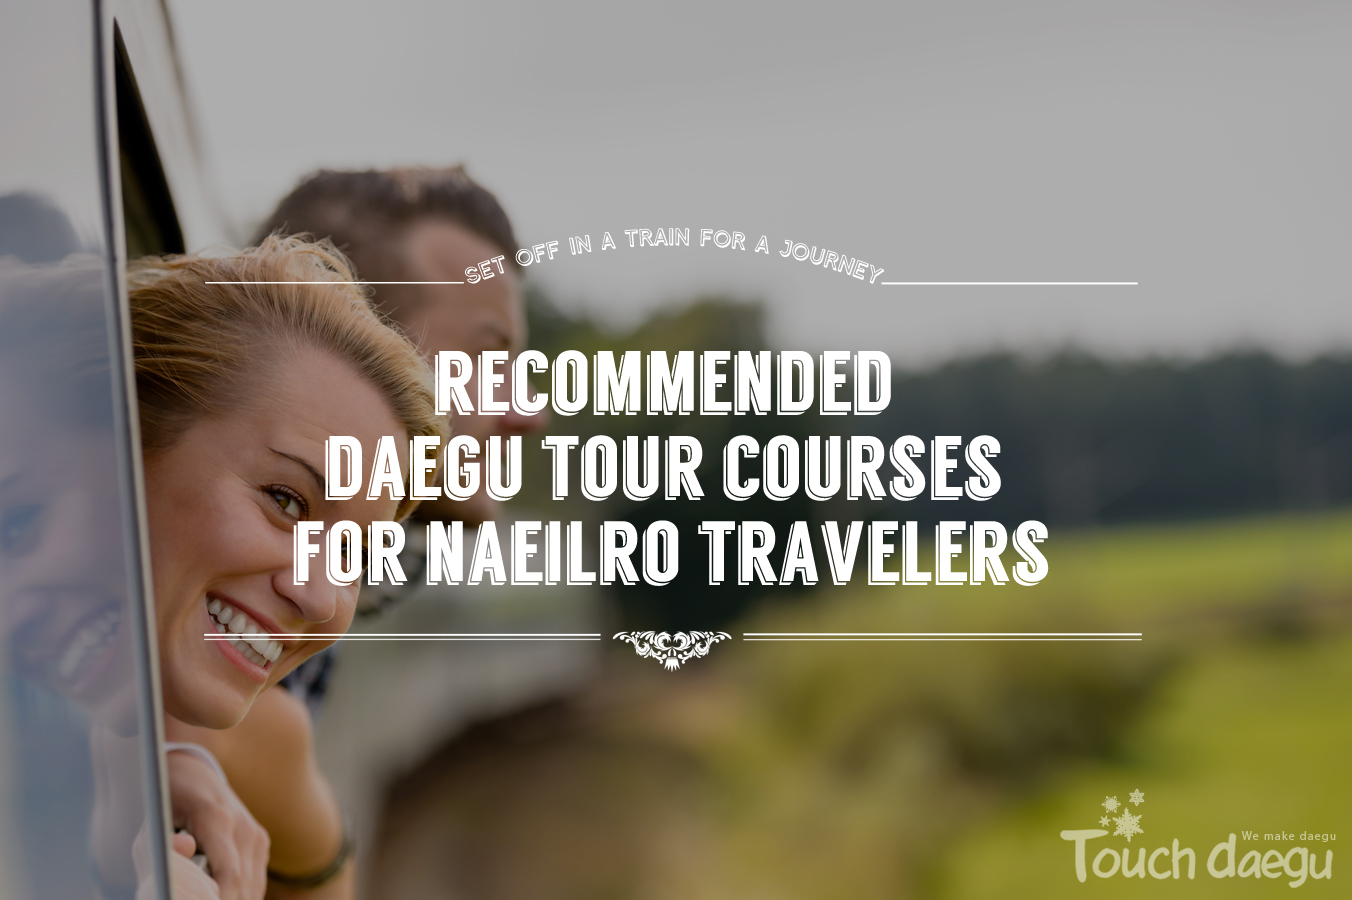 Recommended Daegu Tour Courses for Naeilro(내일로) Travelers